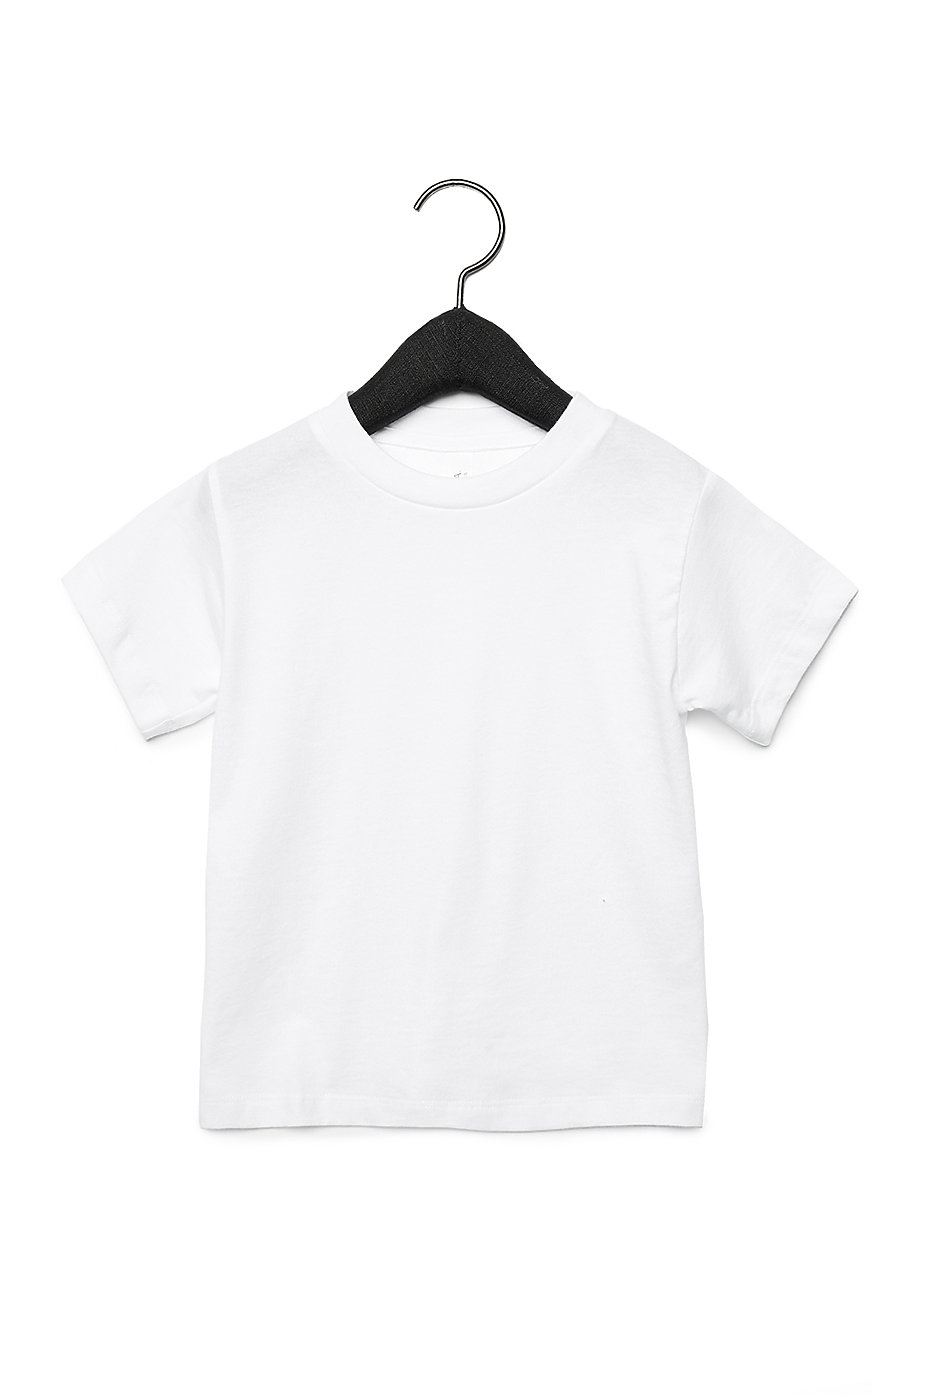 latest trends good out x info for Wholesale Toddler Clothes | Toddler T Shirts | Plain Blank T ...